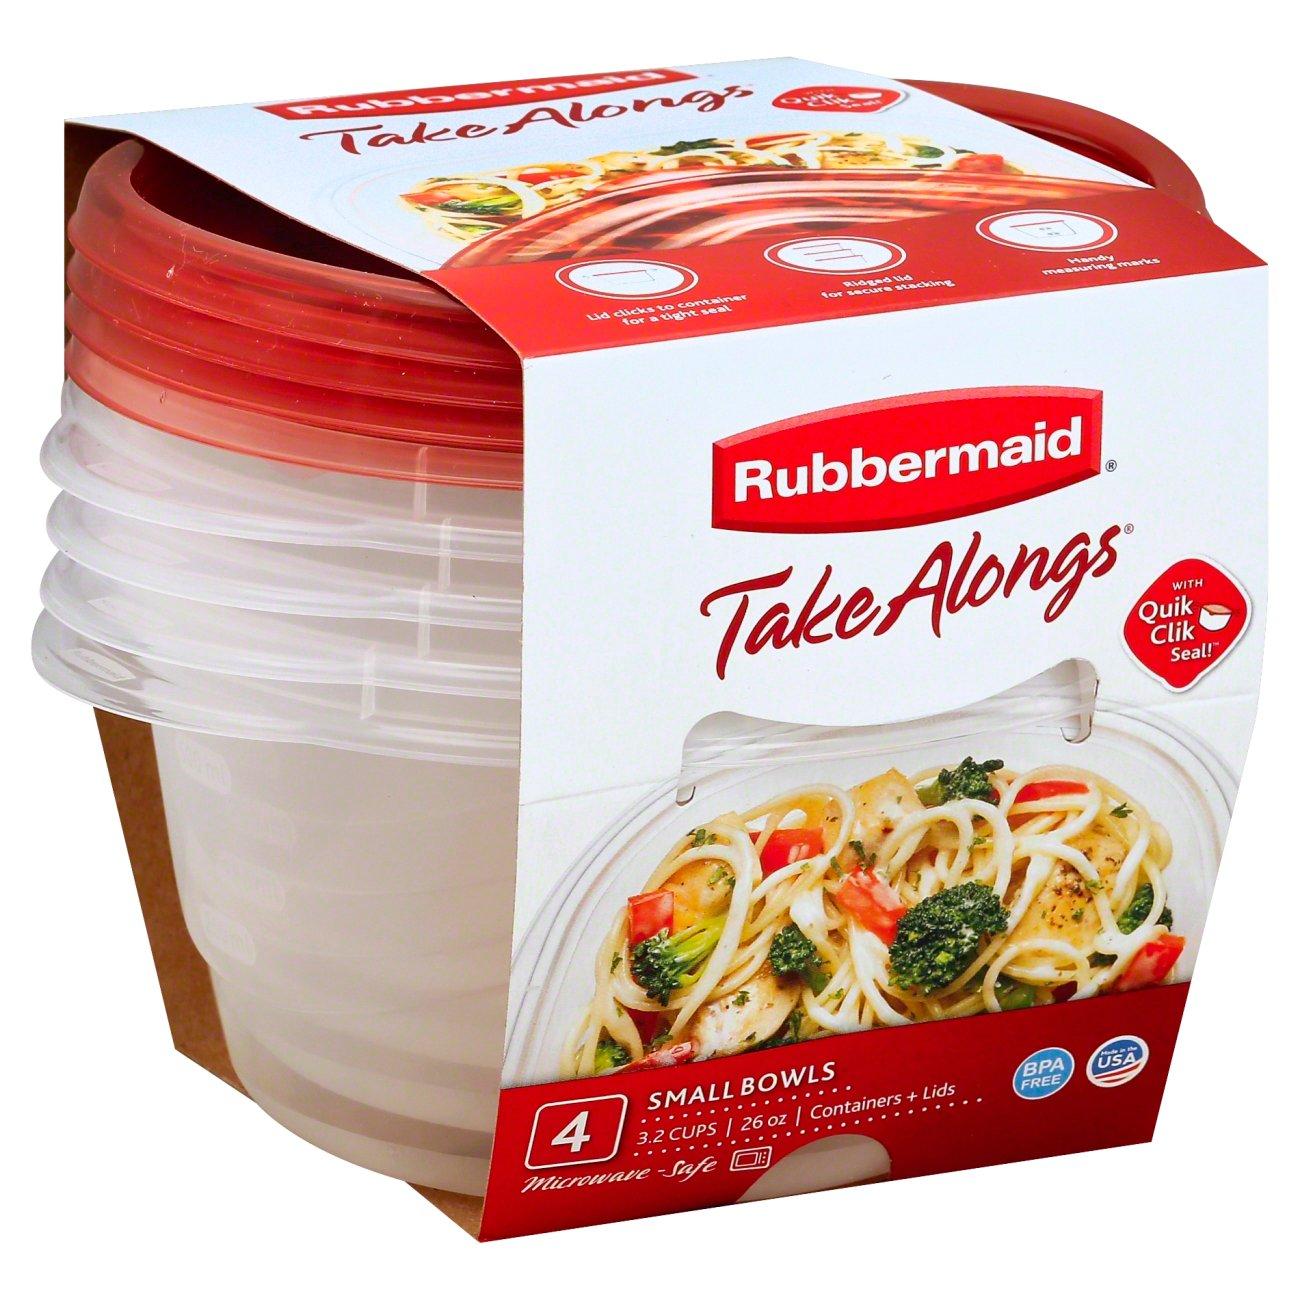 Rubbermaid TakeAlongs Rounds 32 Cup Food Storage Containers Shop